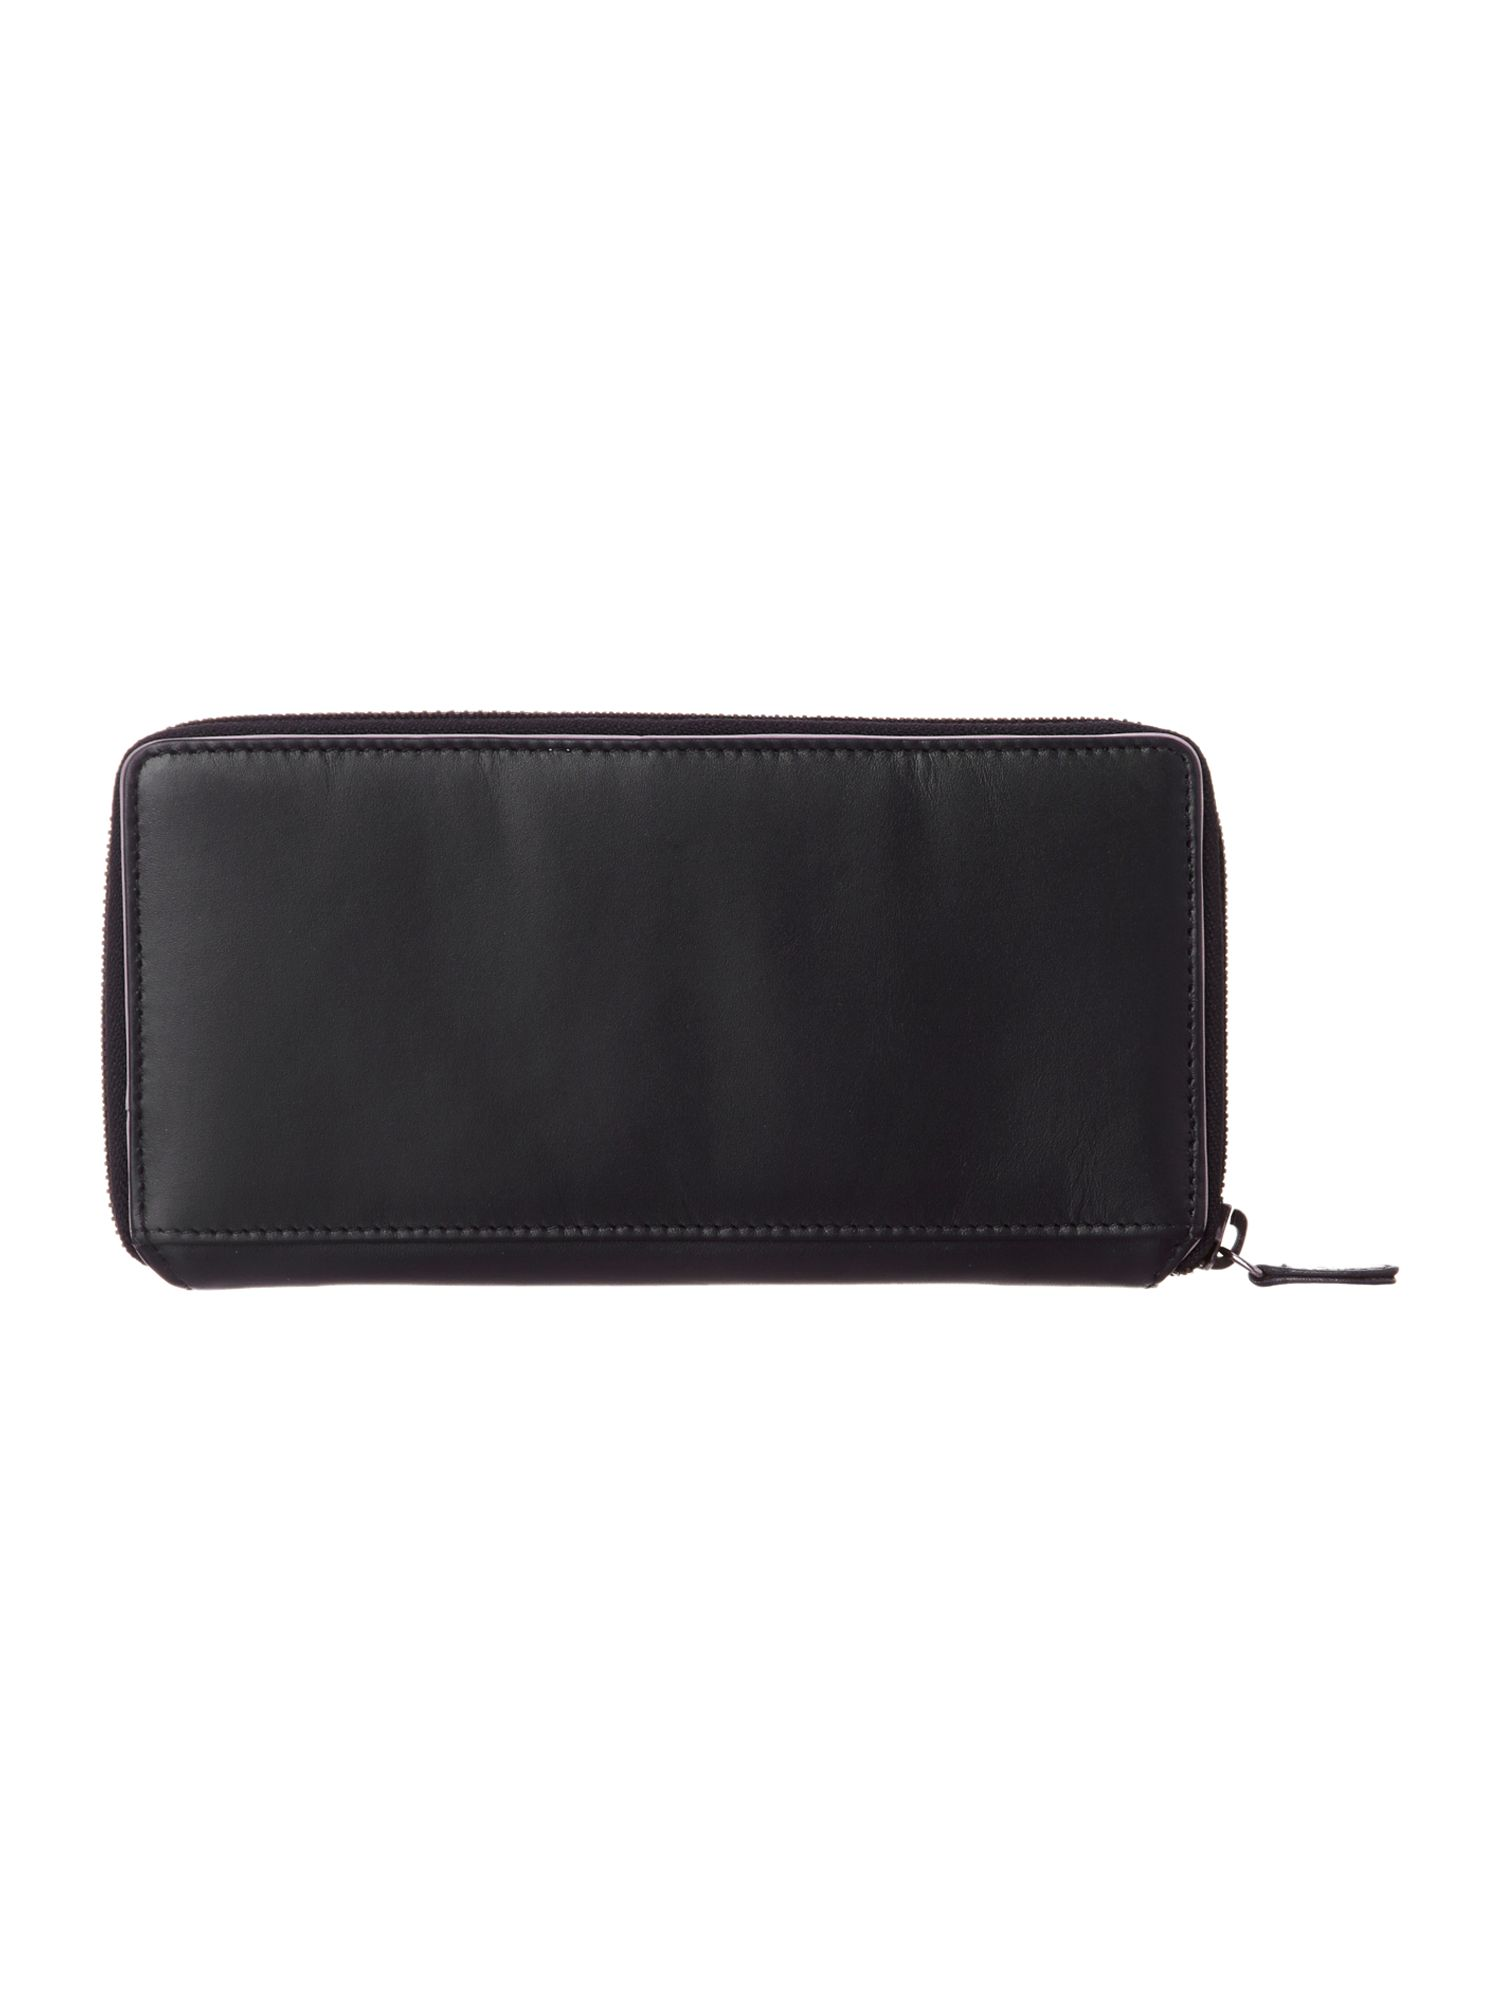 Blair black large zip around purse